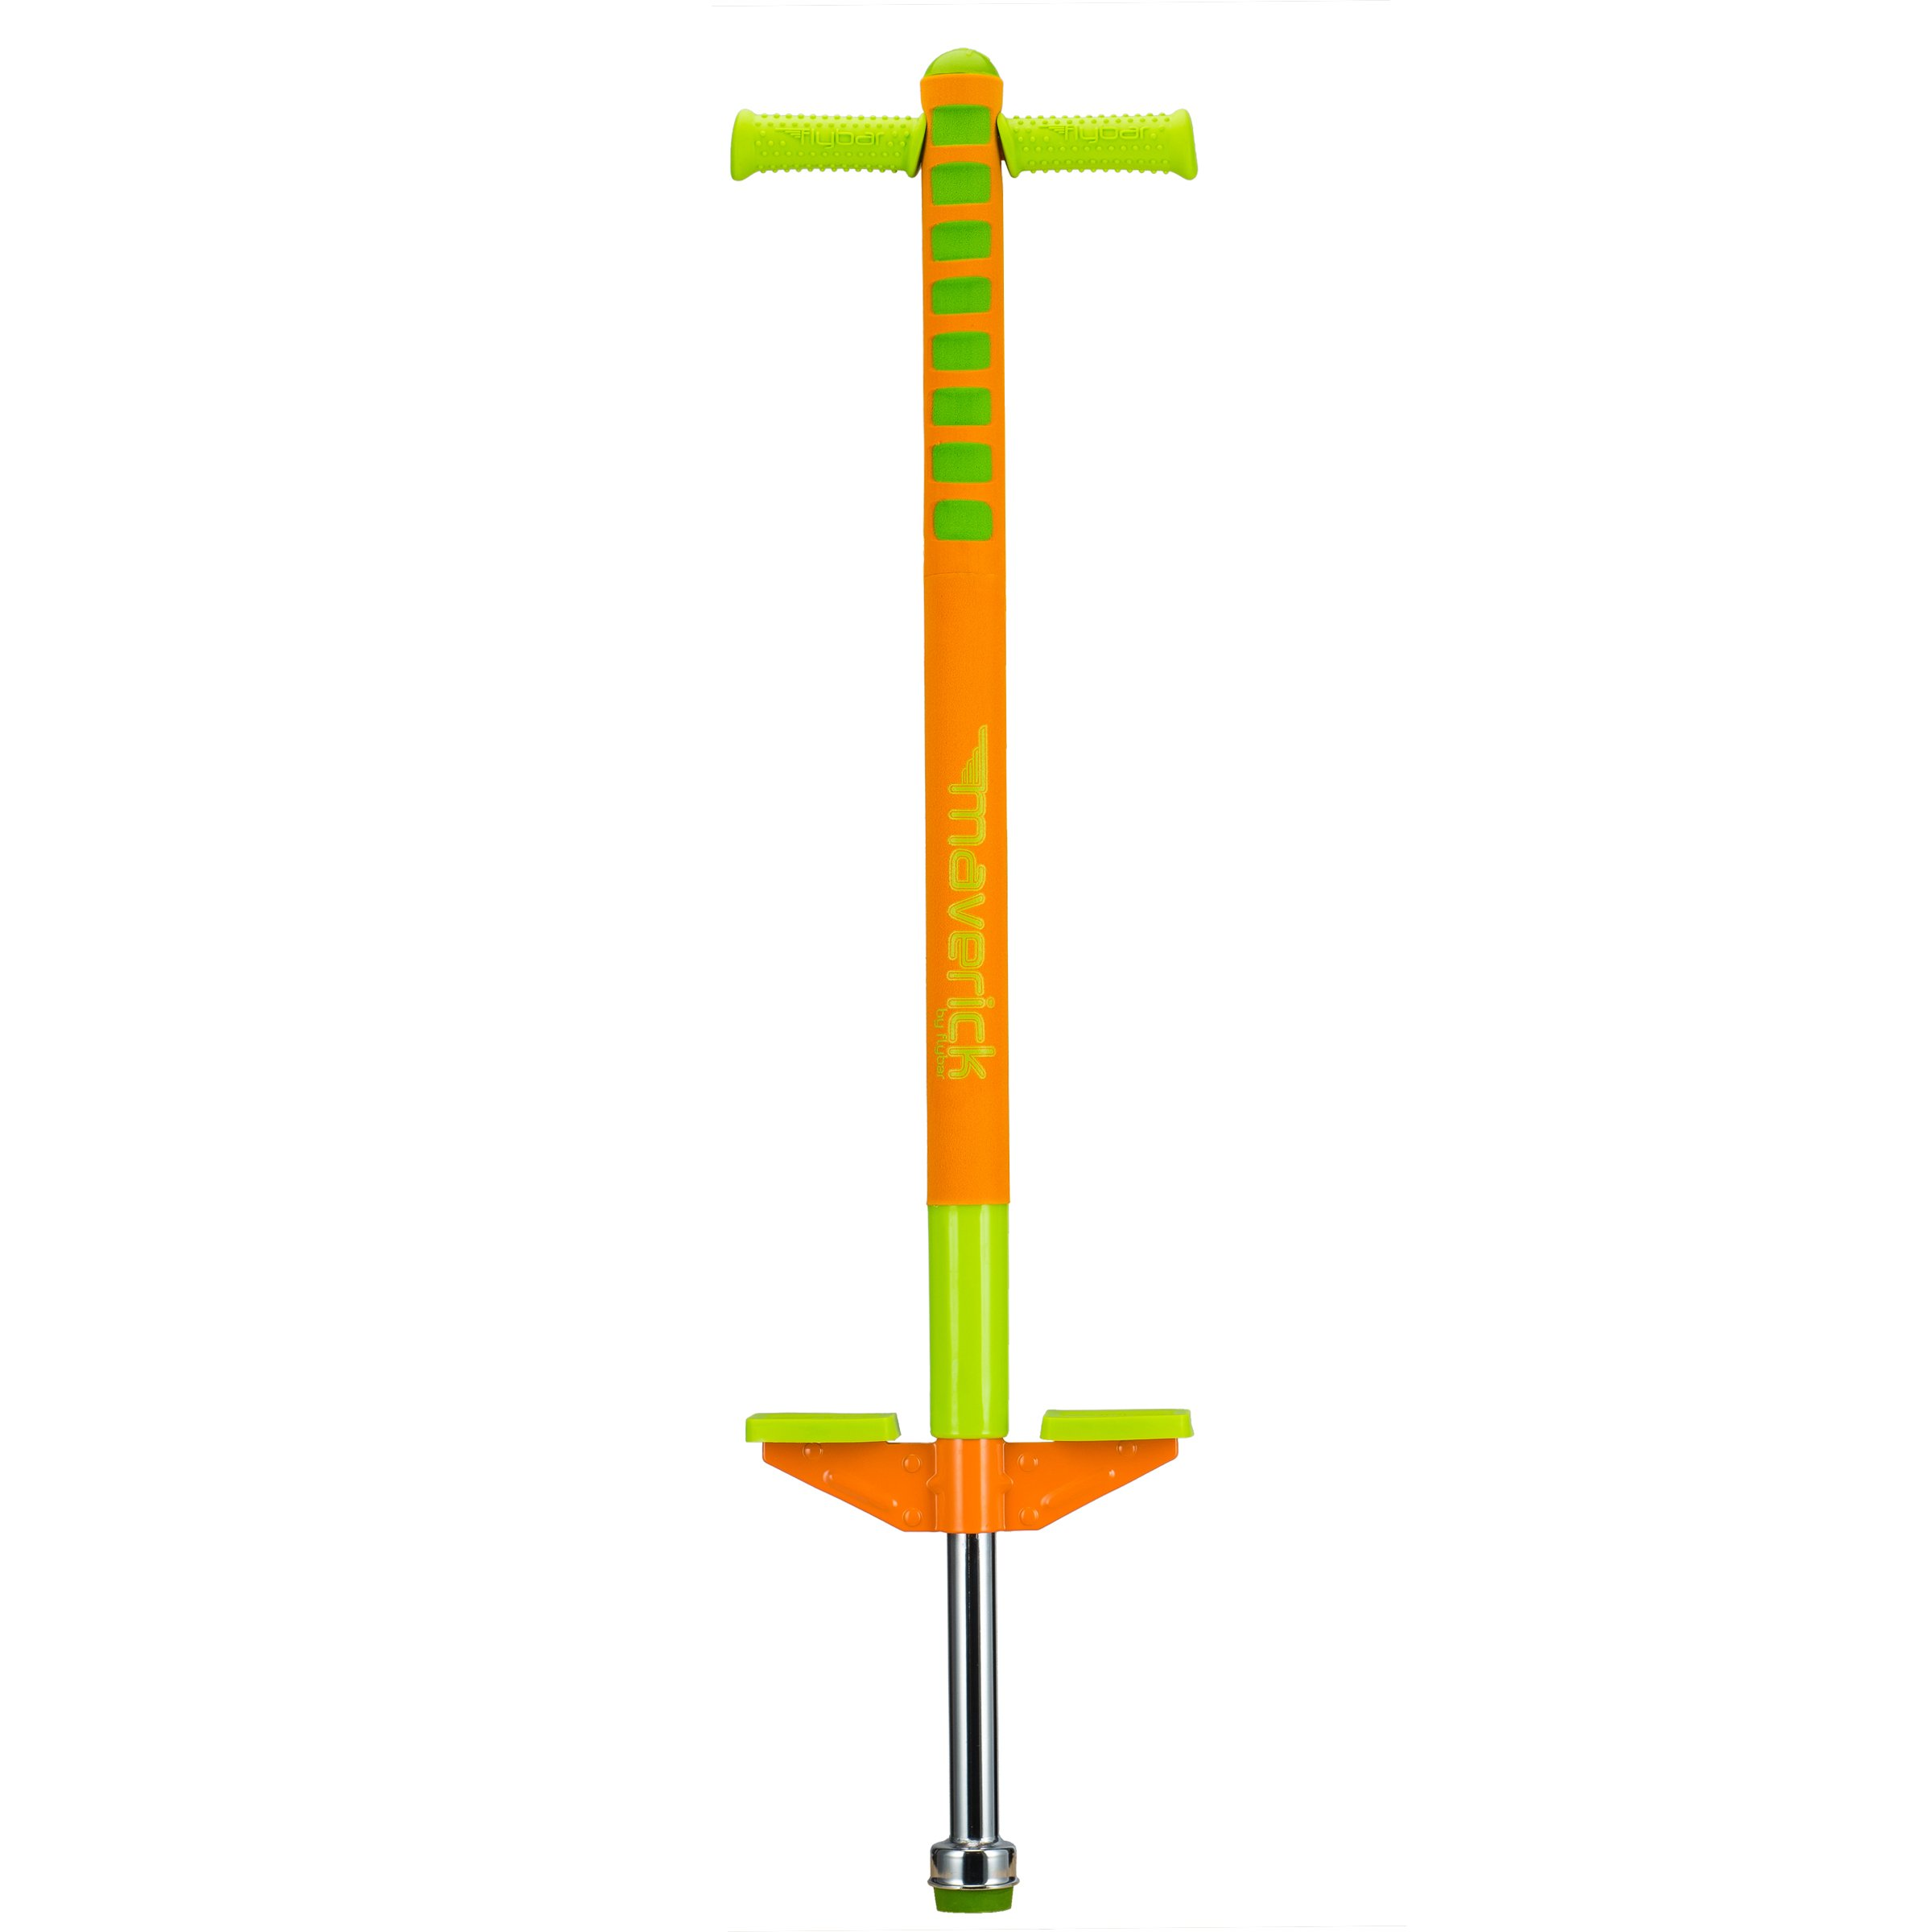 Flybar Limited Edition Foam Maverick Pogo Stick for Boys & Girls, Ages 5-9 (Orange/Lime) Comes With New 'Rubber' Grip Handles. by Flybar